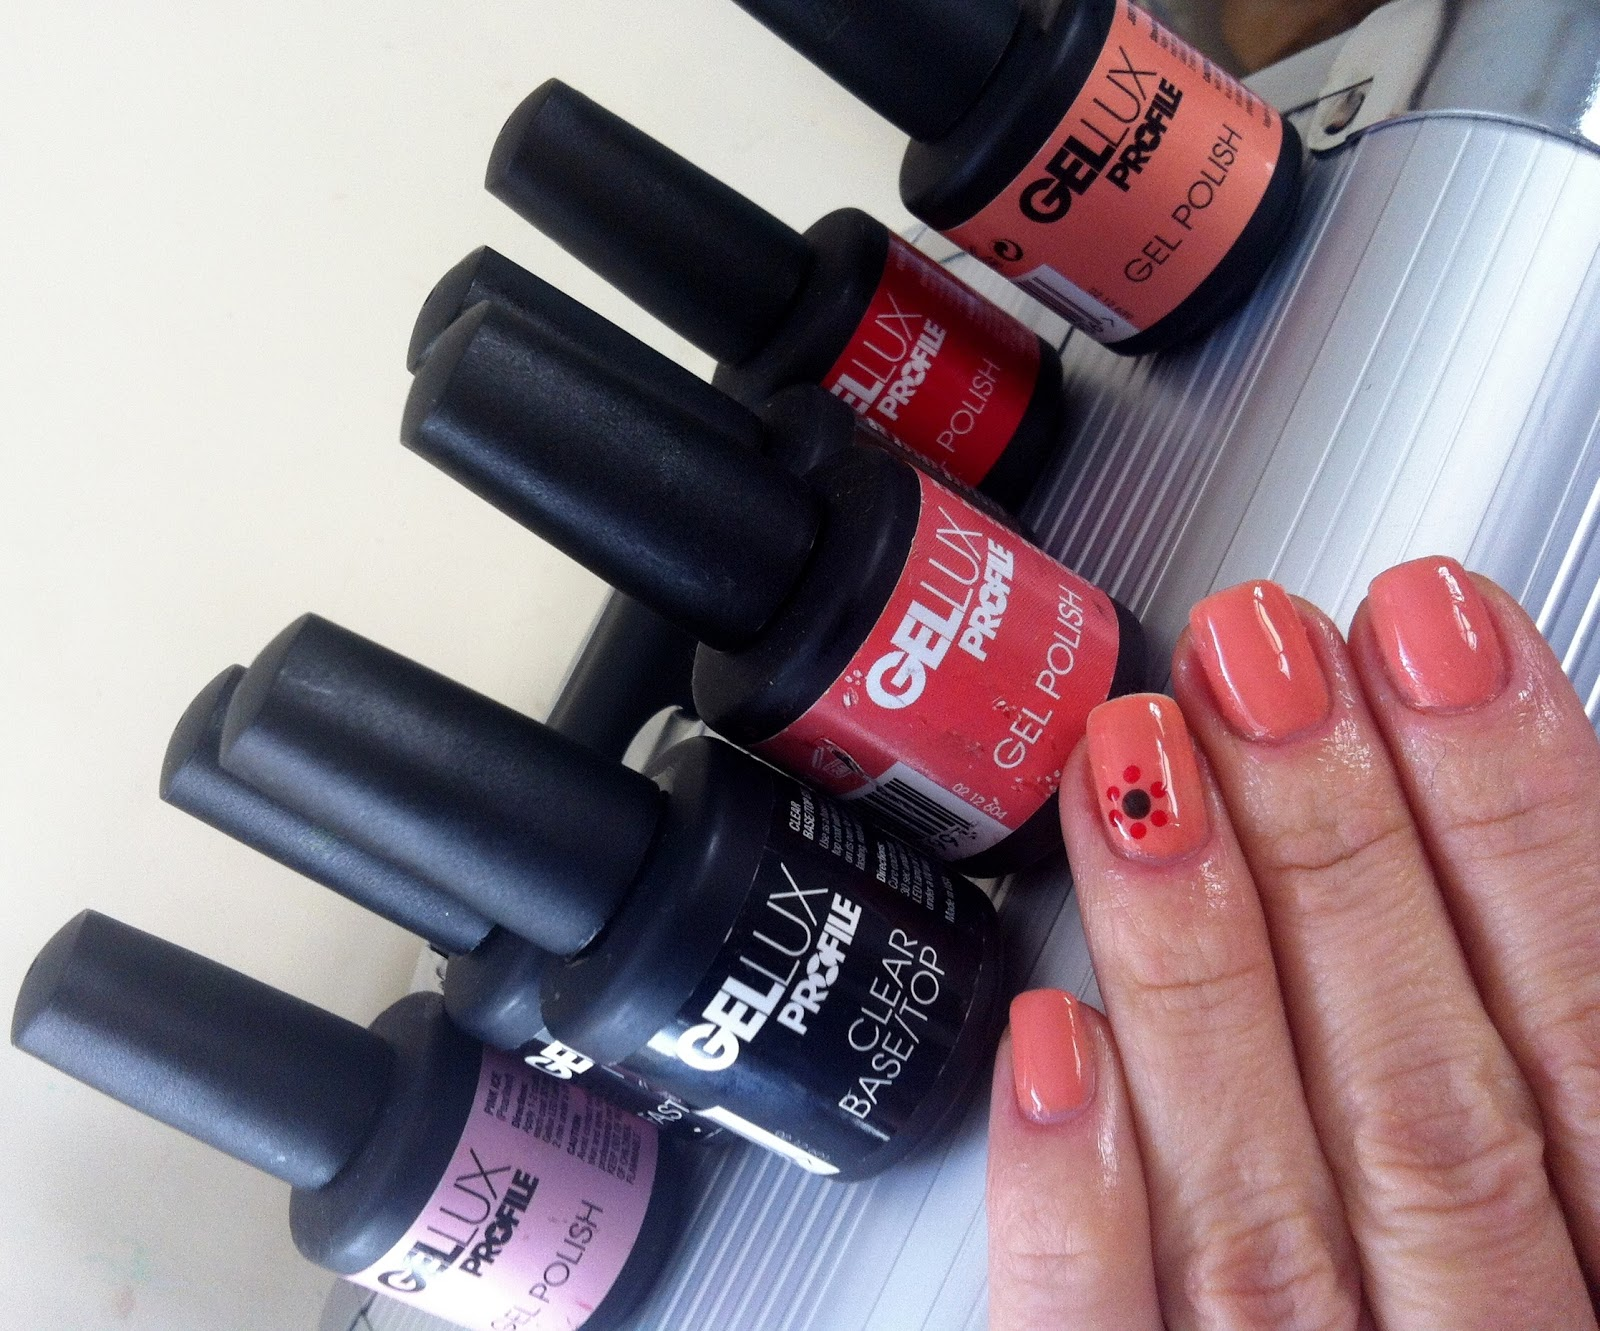 Gellux Profile Gel Nail Polish Review Photos Amp Swatches Adna Cristina Beauty